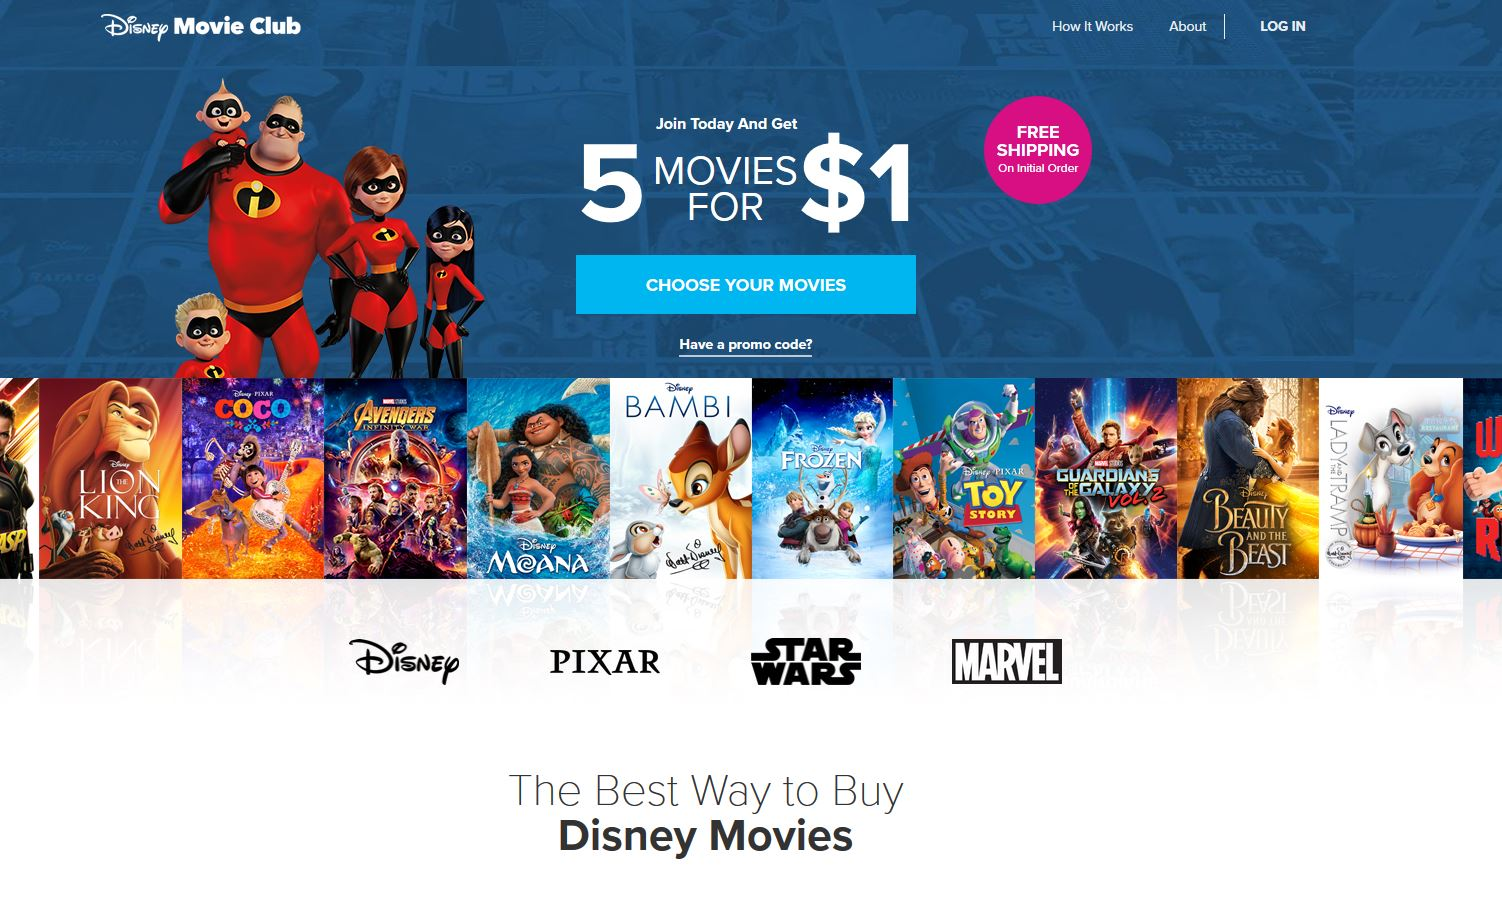 Disney Movie Club Refer a Friend